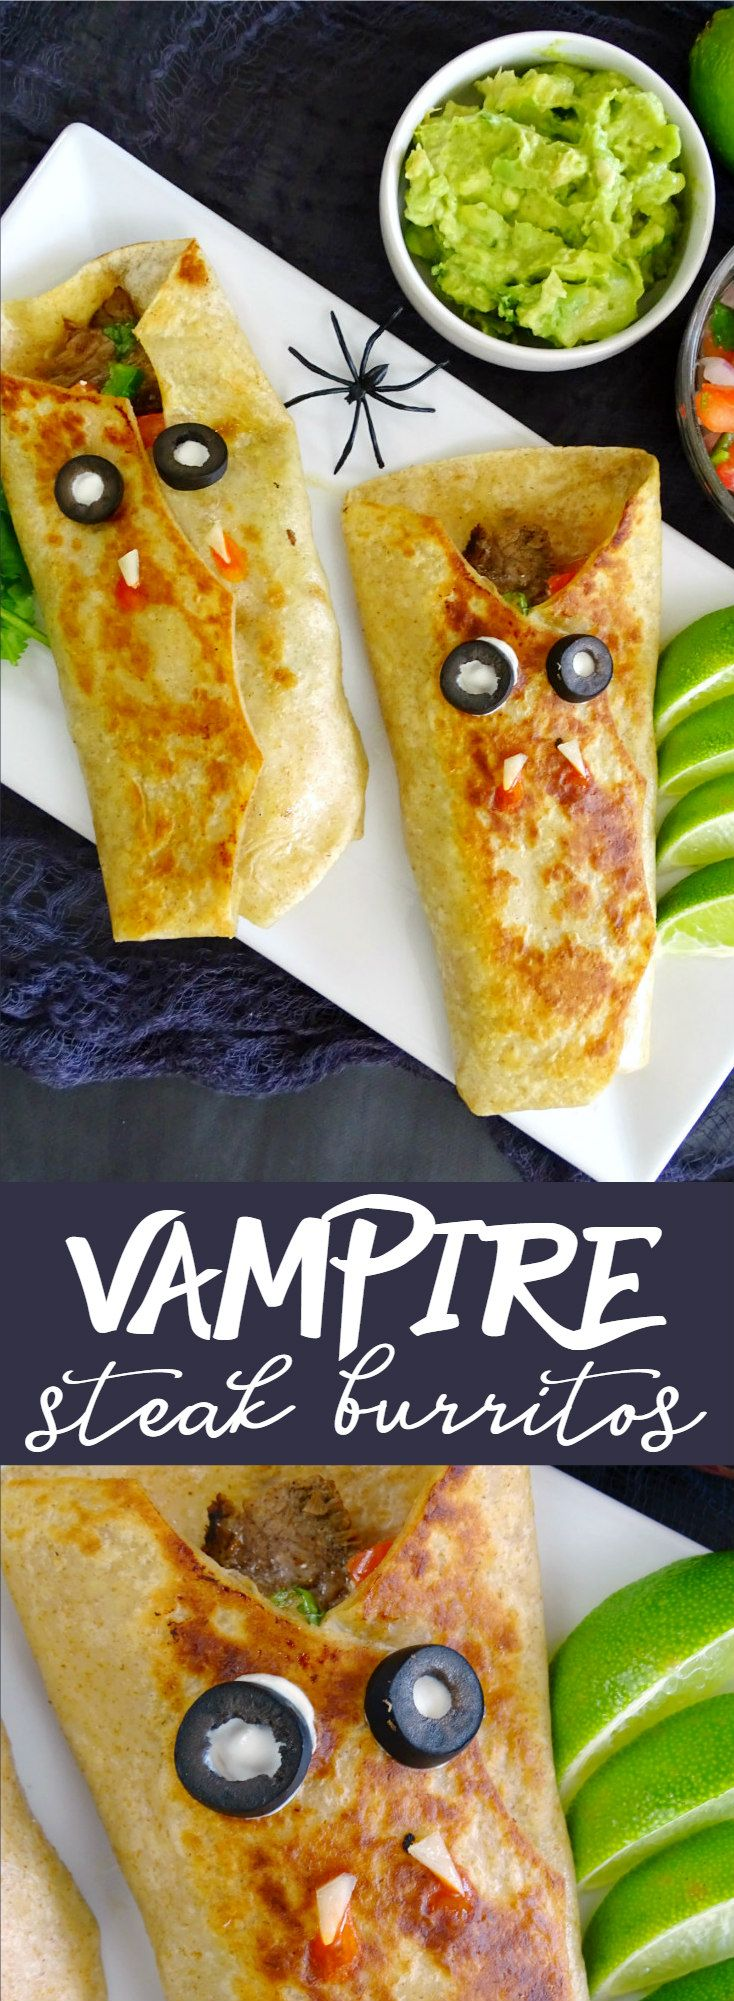 Sink your teeth into these Vampire Steak Burritos made with lime-garlic steak, pico de gallo, and Asiago cheese!